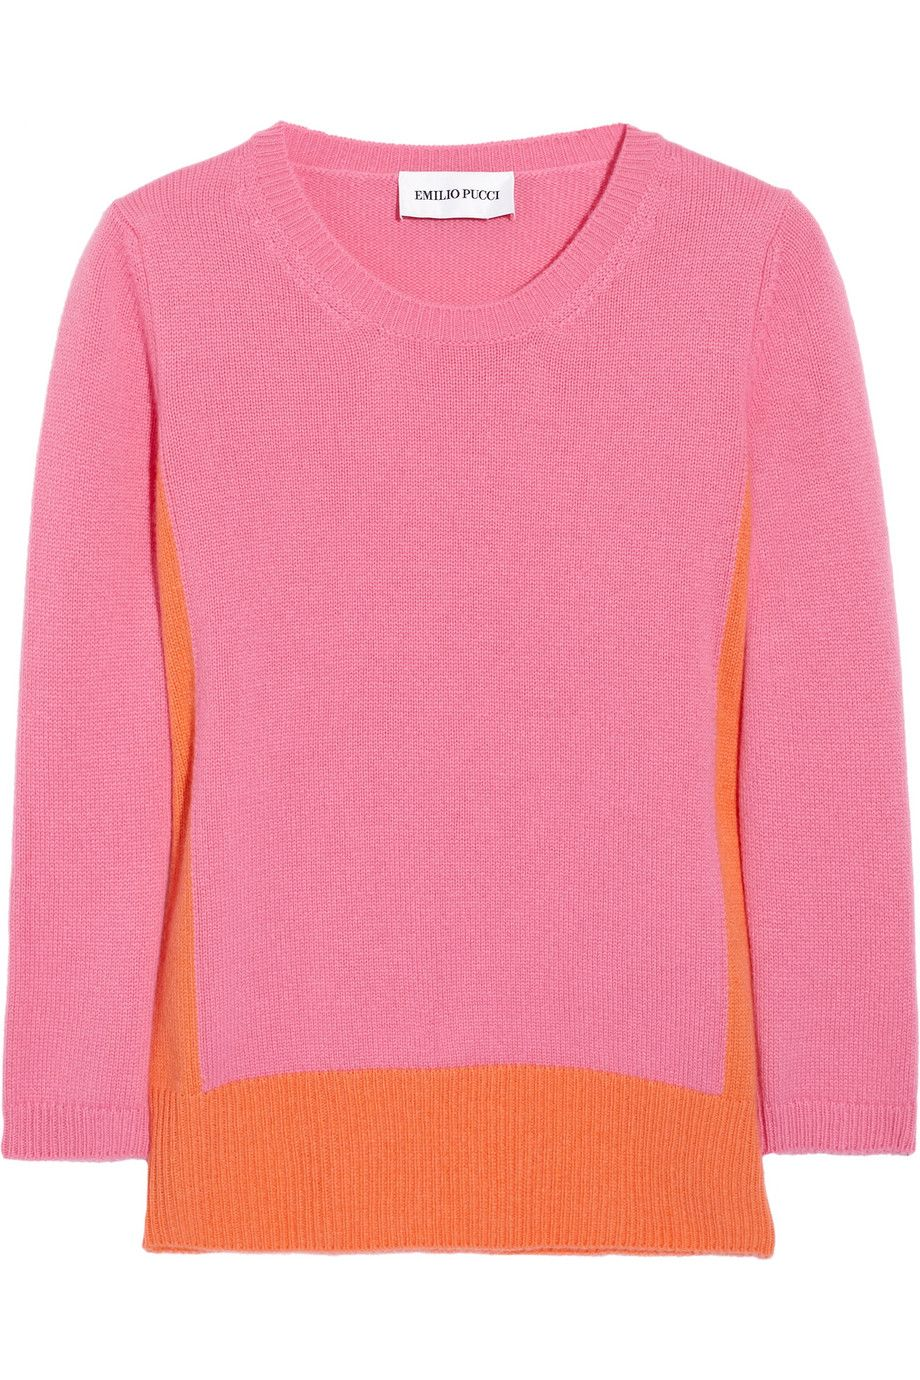 Lovely silhouetting. Hot-pink and sherbet-orange colour-block cashmere sweater.  Emilio Pucci